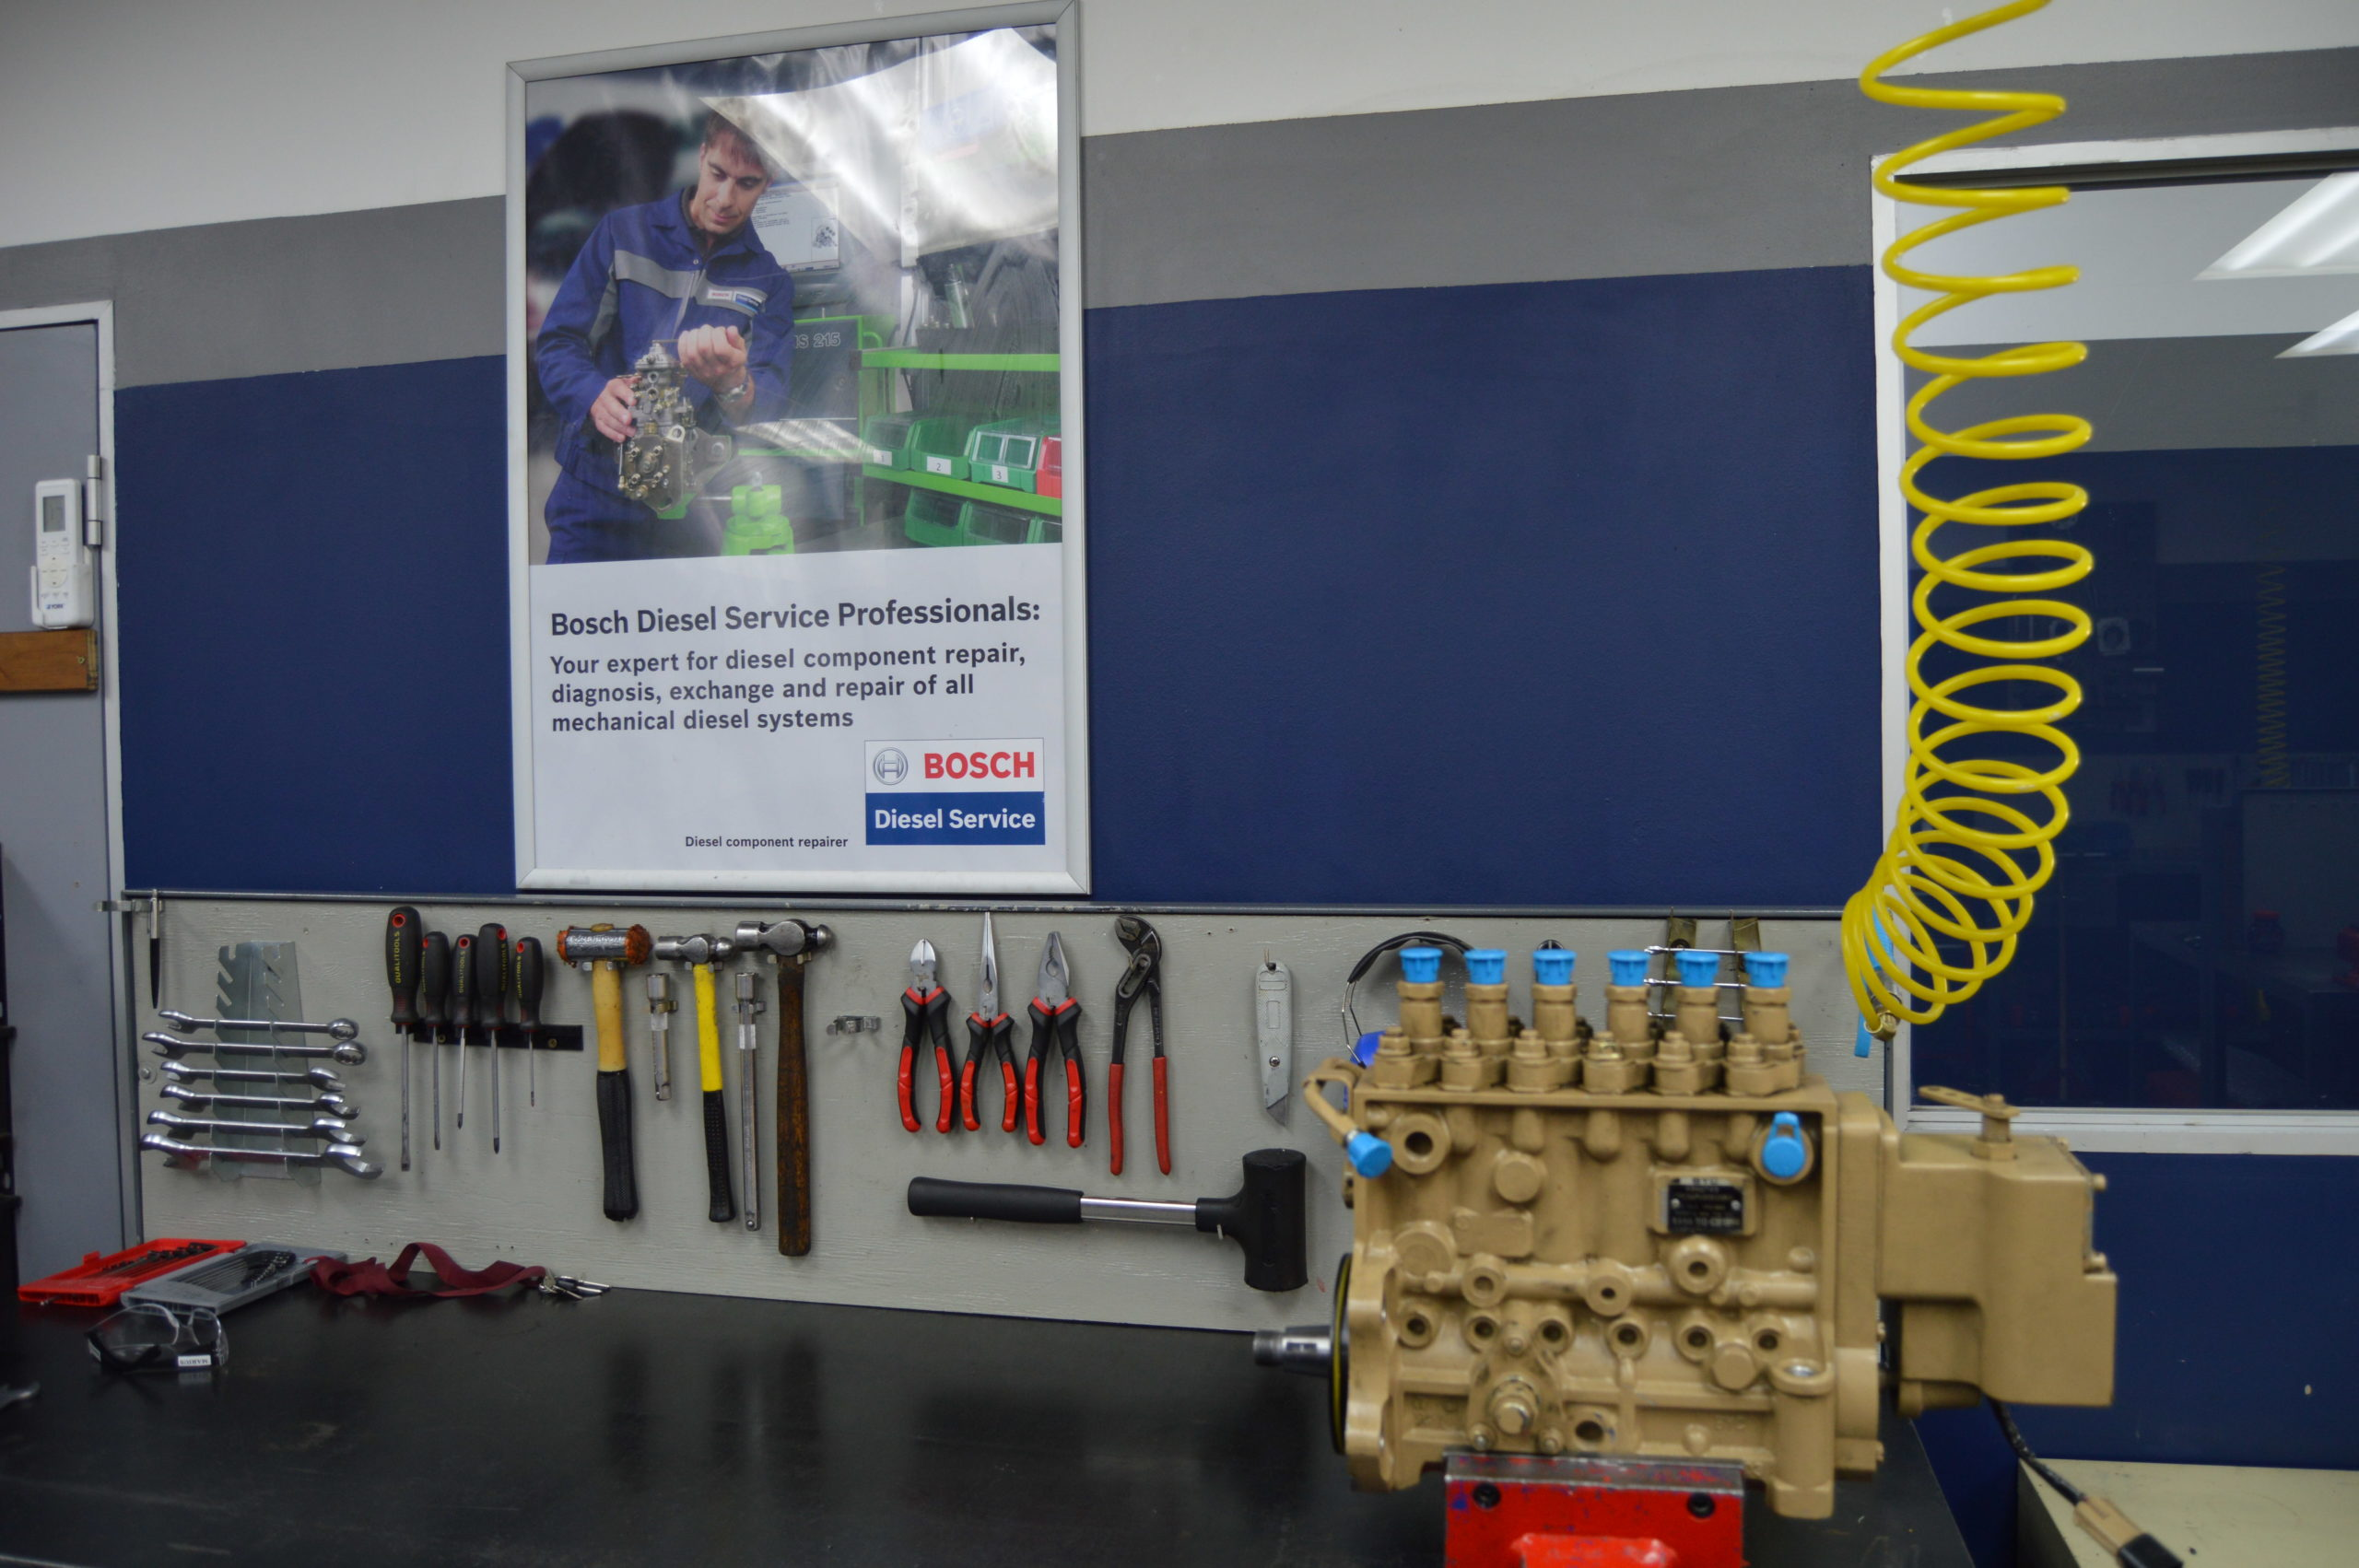 Reef Fuel Injection Services Receives Accreditation To Conduct Warranty Repairs On Bosch CP4 Common Rail Direct Fuel Injection Systems